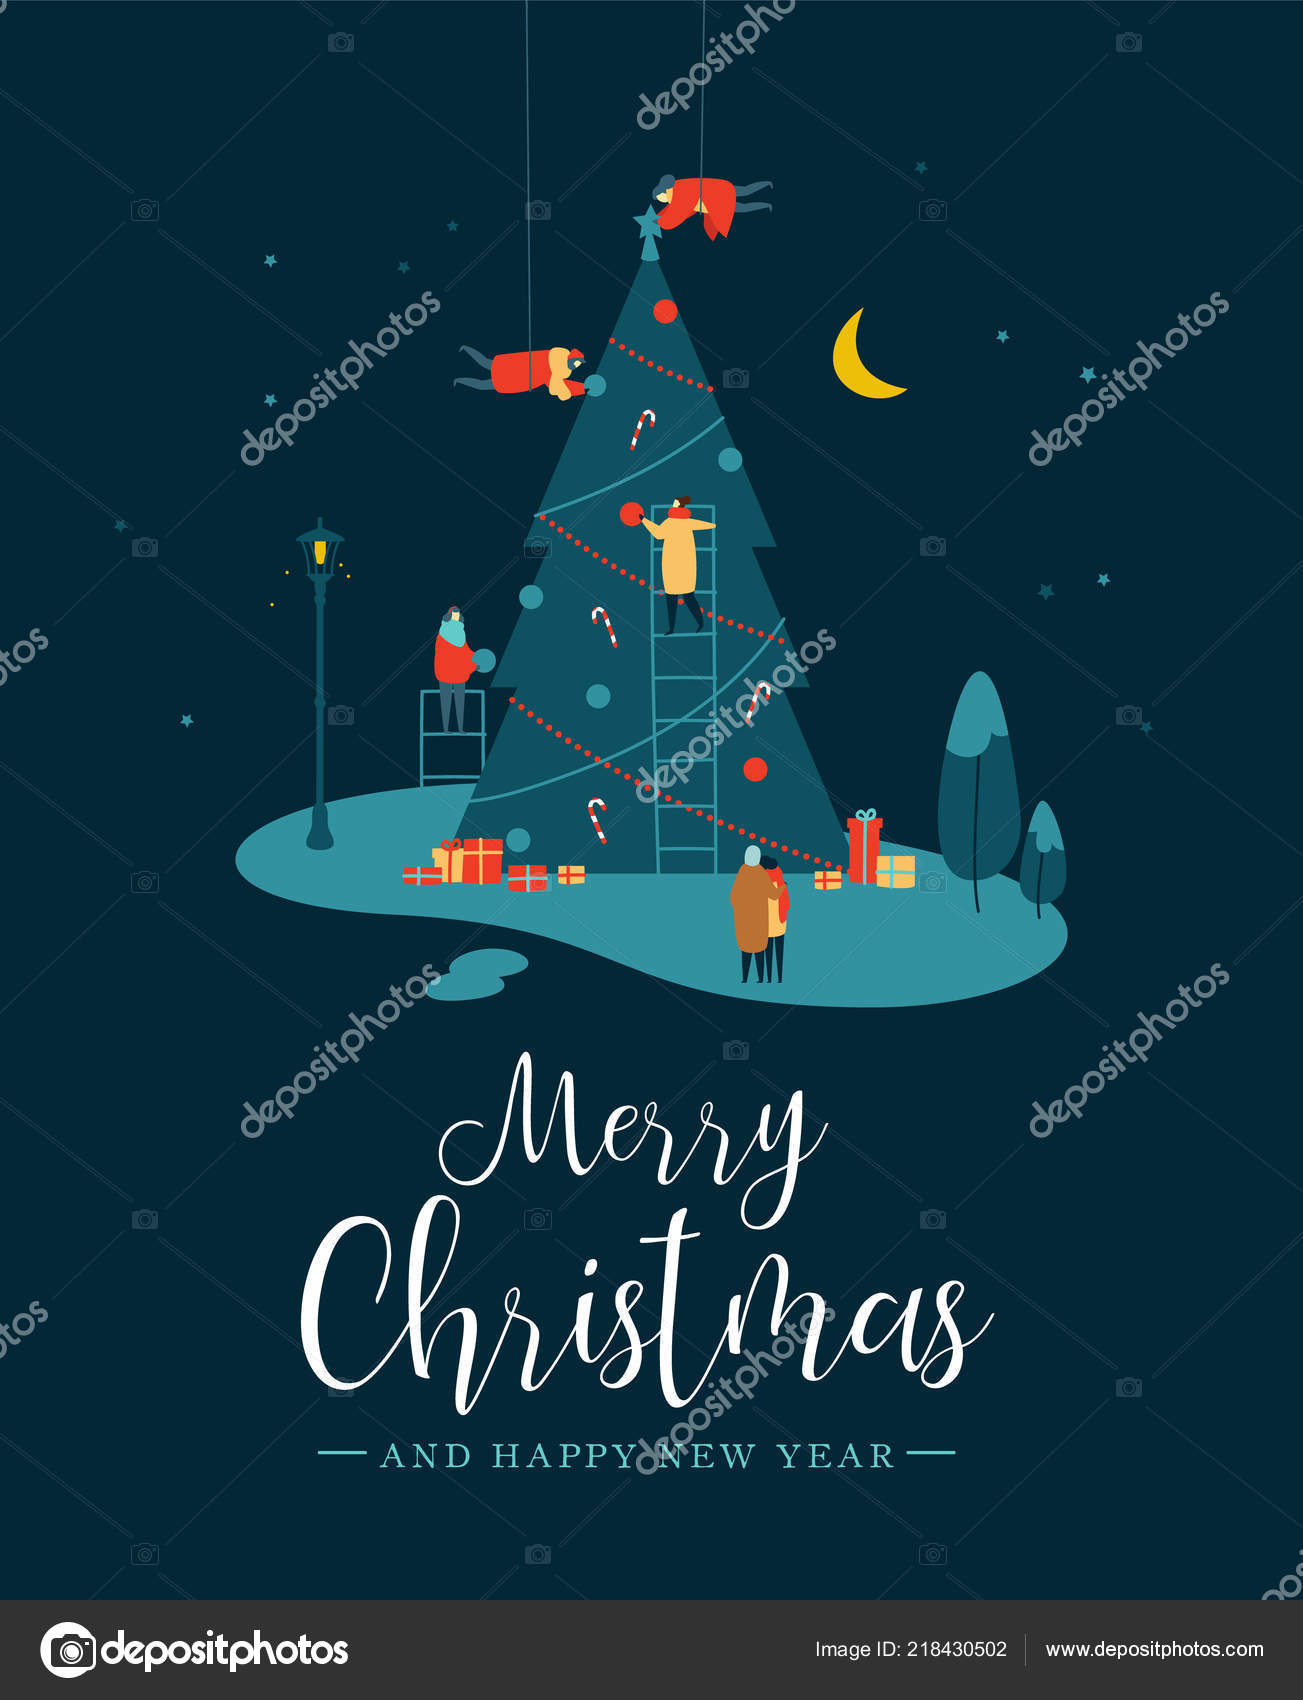 merry christmas happy new year greeting card people group making stock vector